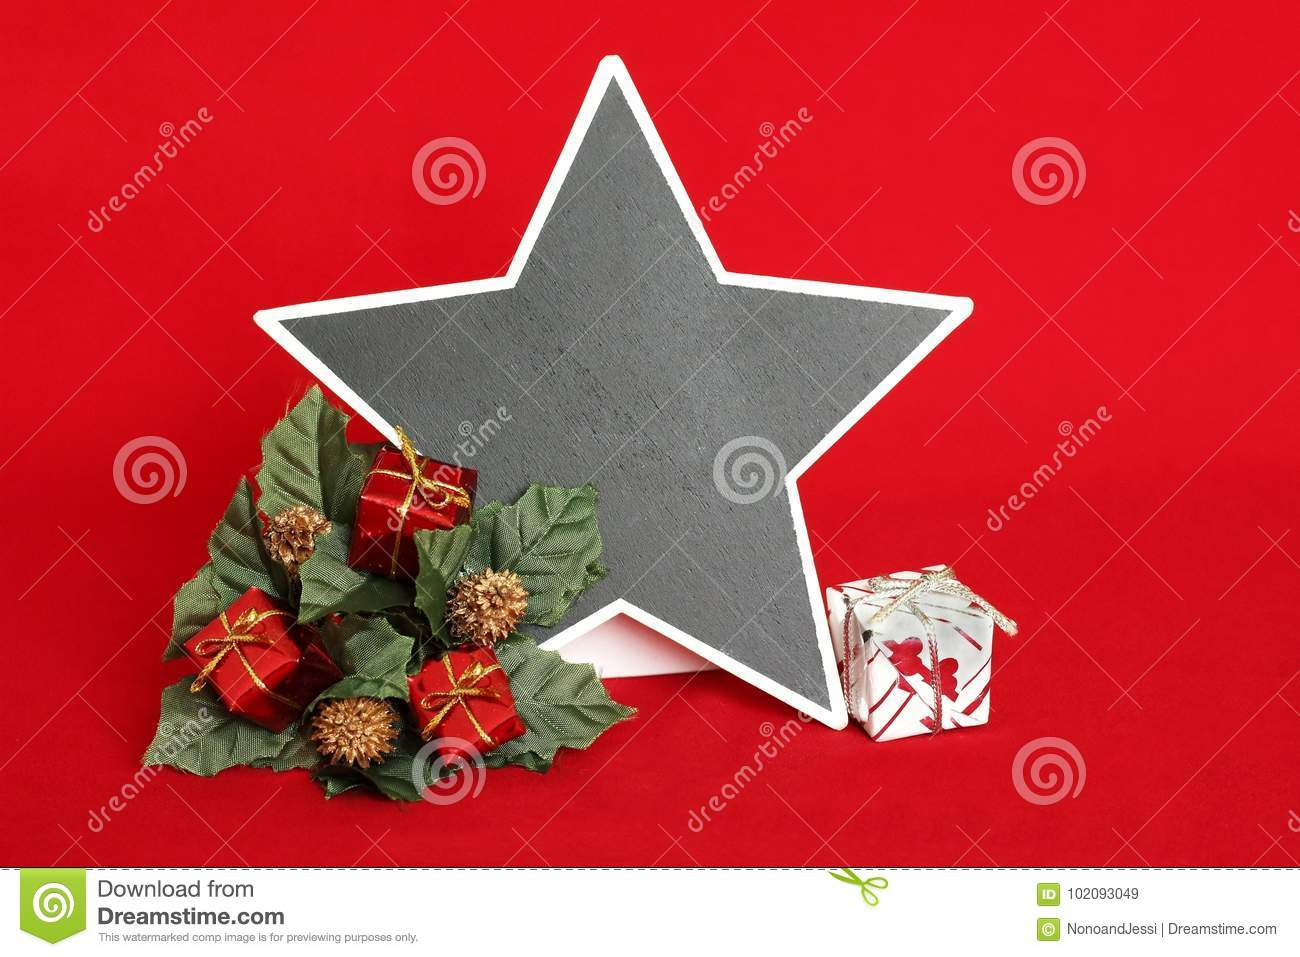 empty slate in the form of a star to write a message on a red background with red and white gifts placed on a wreath of fir for